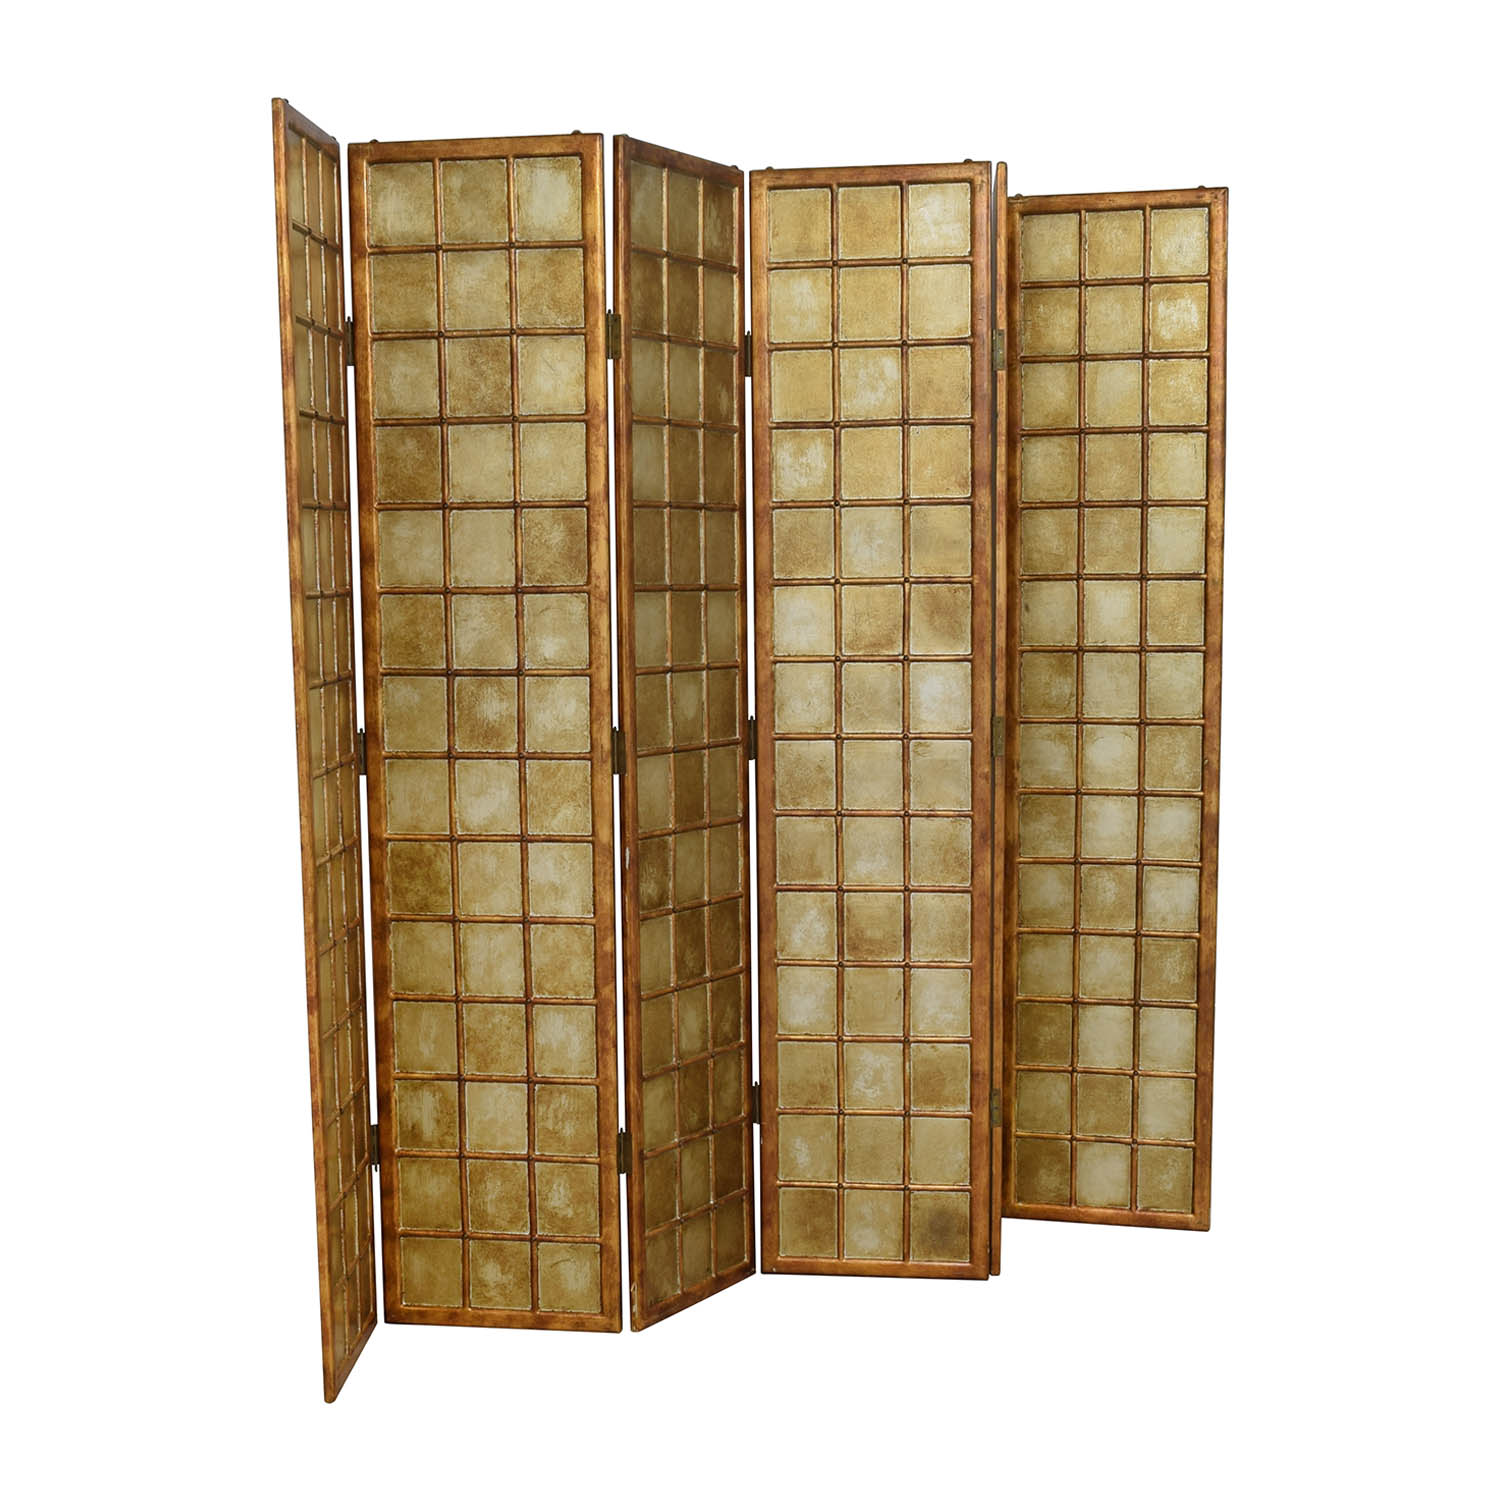 Bloomingdale's Bloomingdale's Six Panel Decorative Screen Dividers